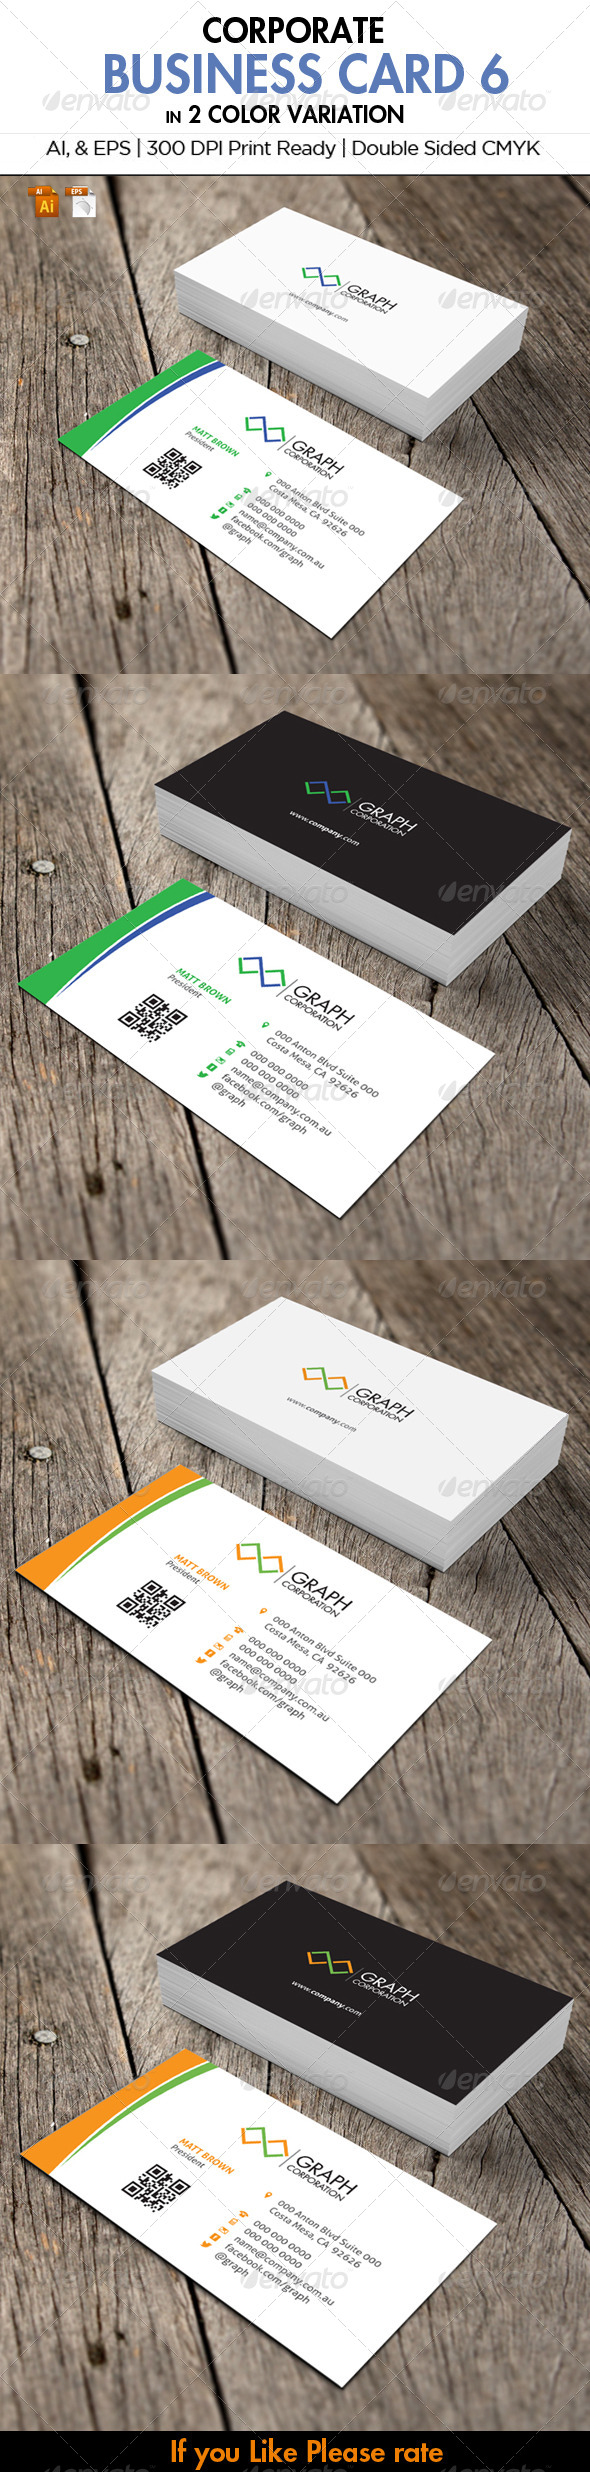 GraphicRiver Corporate Stationery 6 6018692